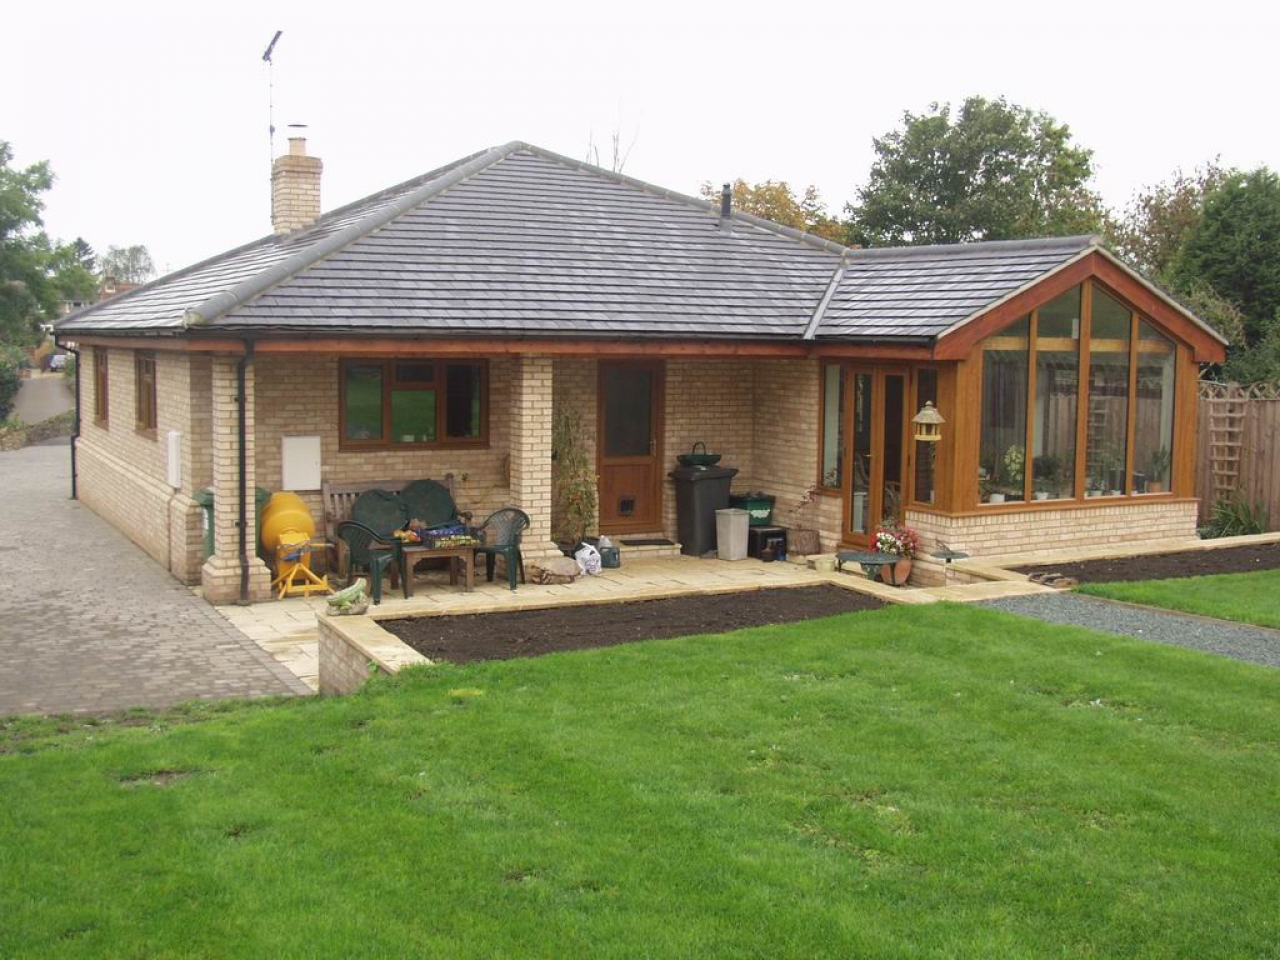 Cottage bungalow homes cottages and bungalows images of for Cabins cottages and bungalows